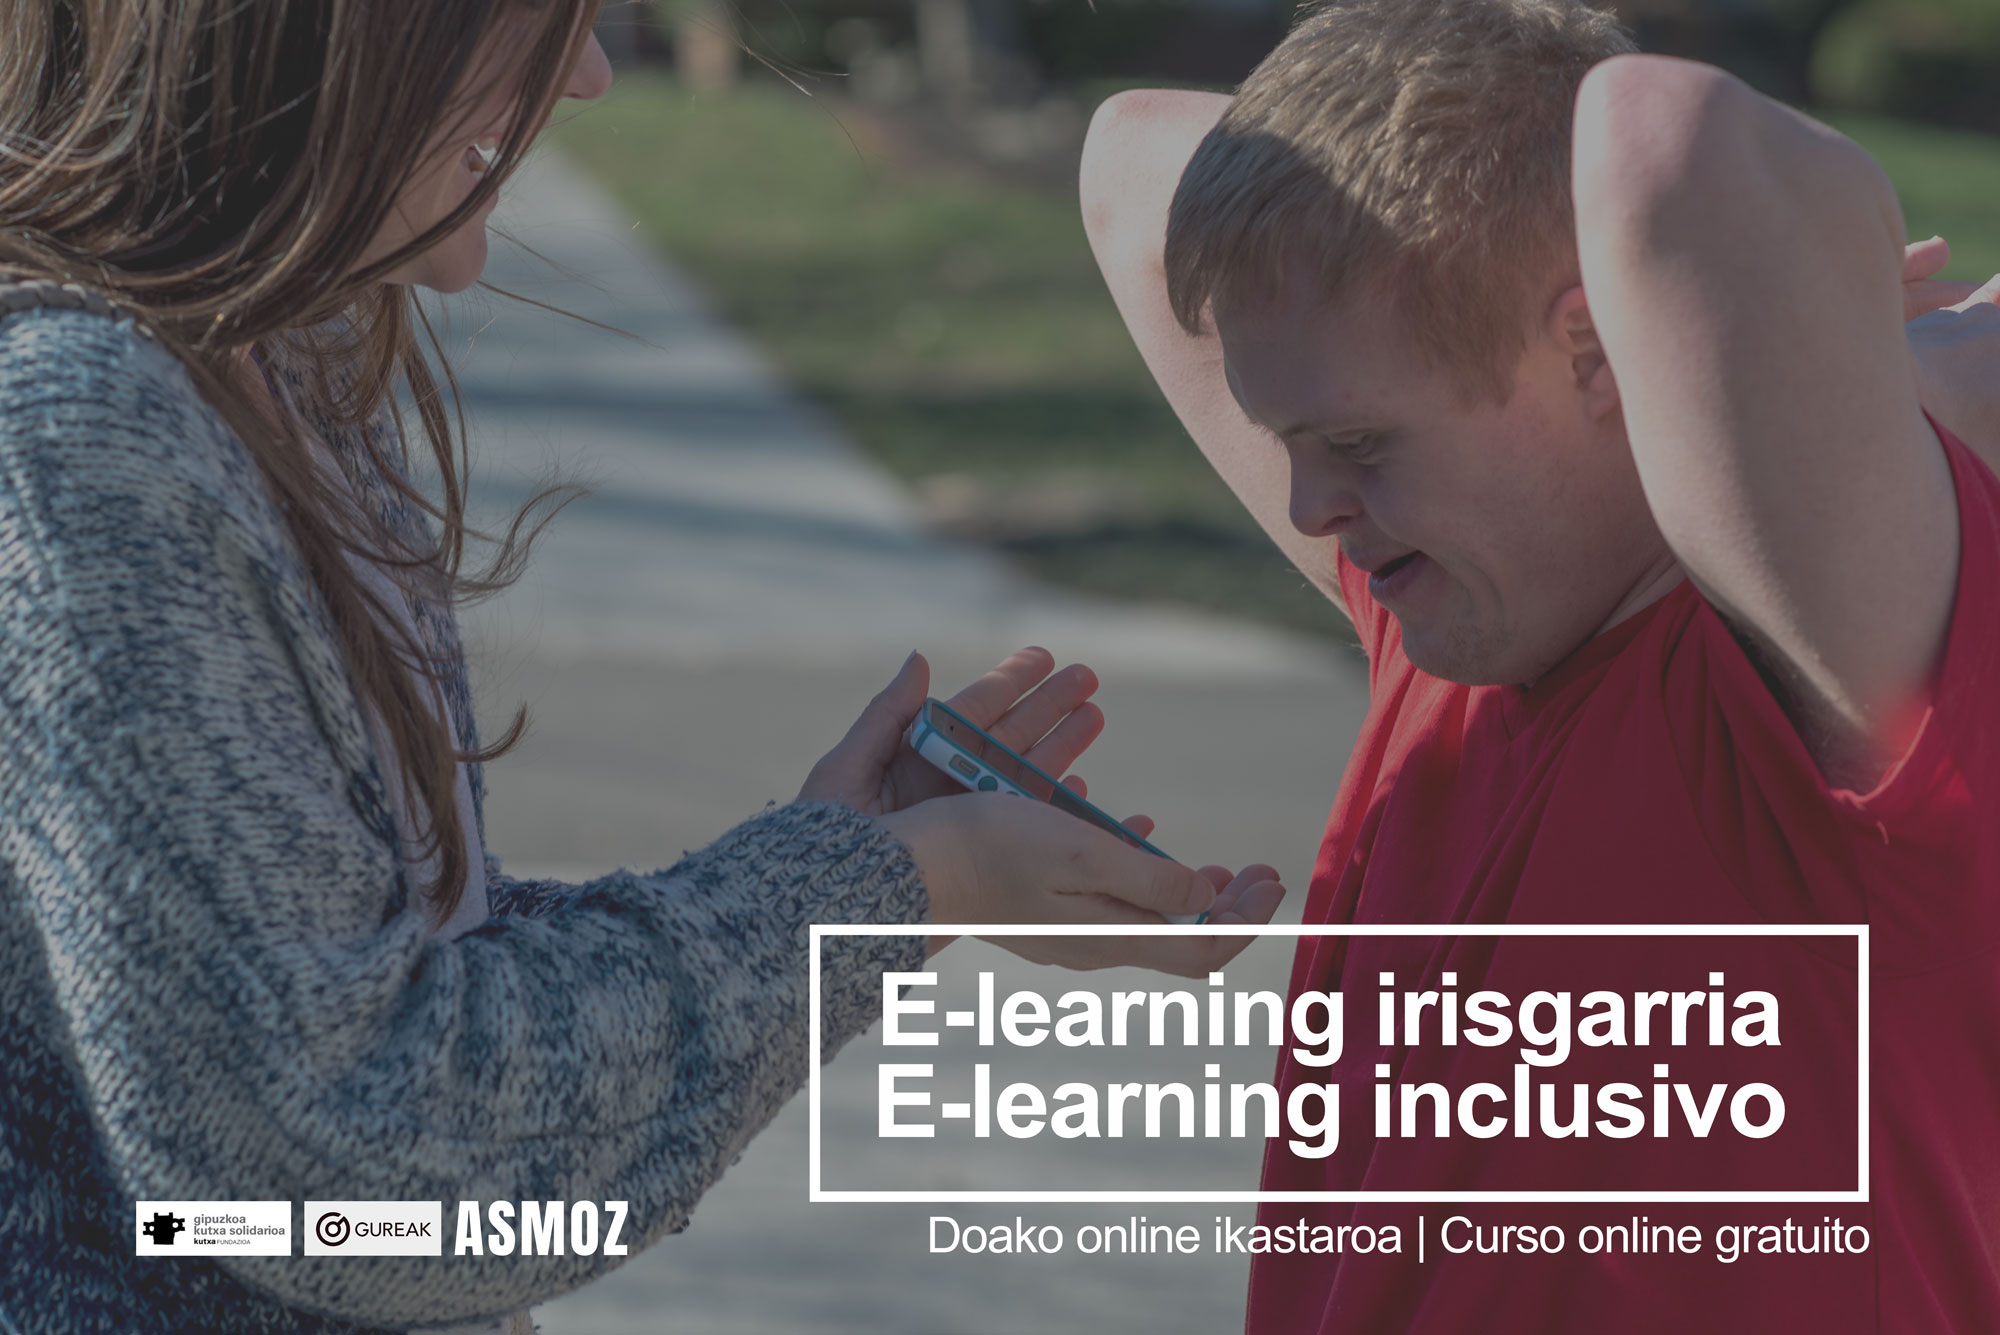 Elearning inclusivo